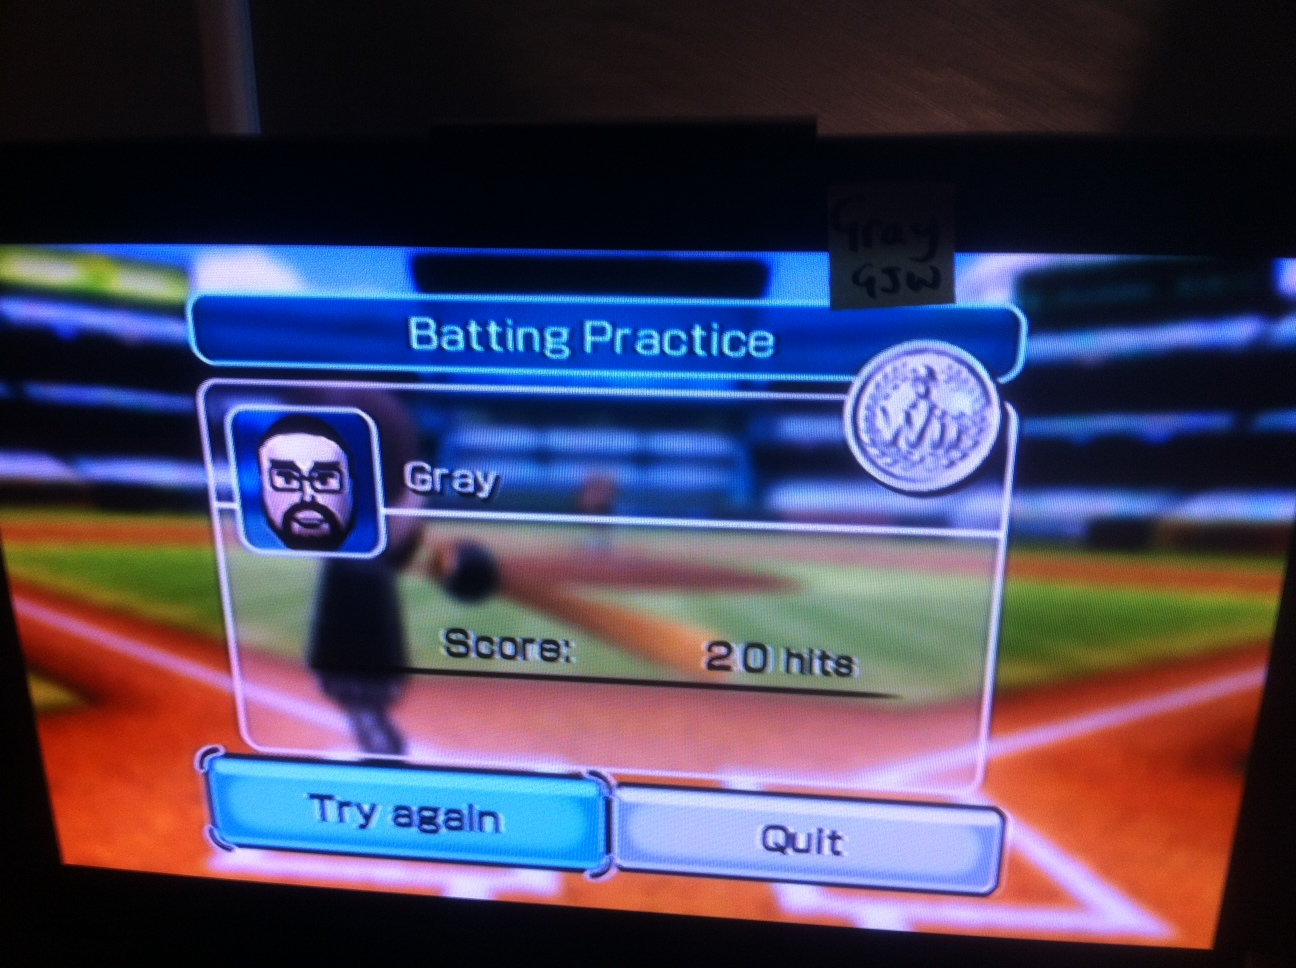 Gray: Wii Sports: Baseball [Batting Practice] (Wii) 20 points on 2014-04-25 04:40:20